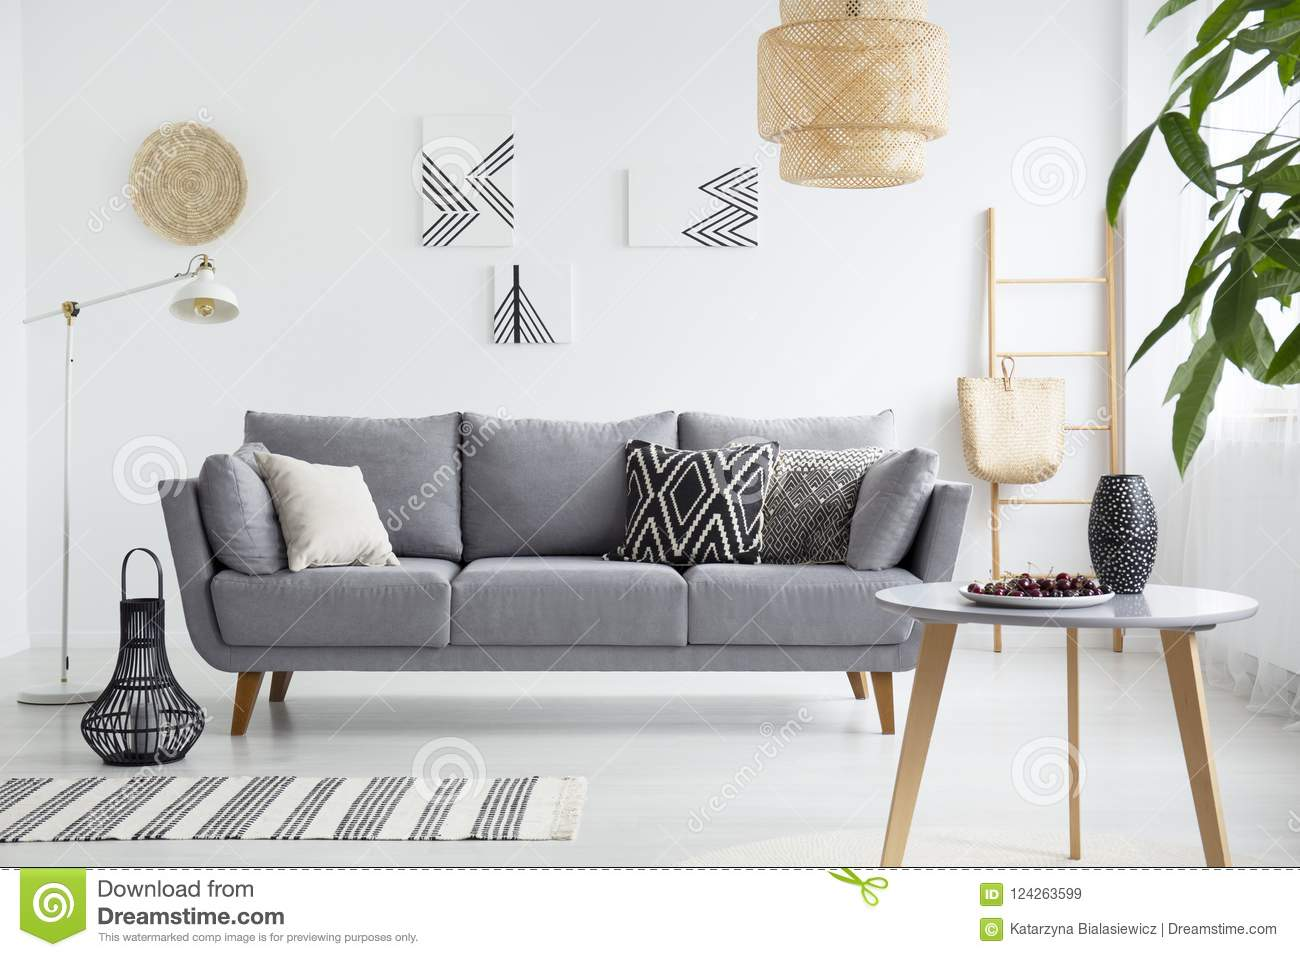 living room cushions affordable wall decor real photo of a scandi interior with on gray couch cherries